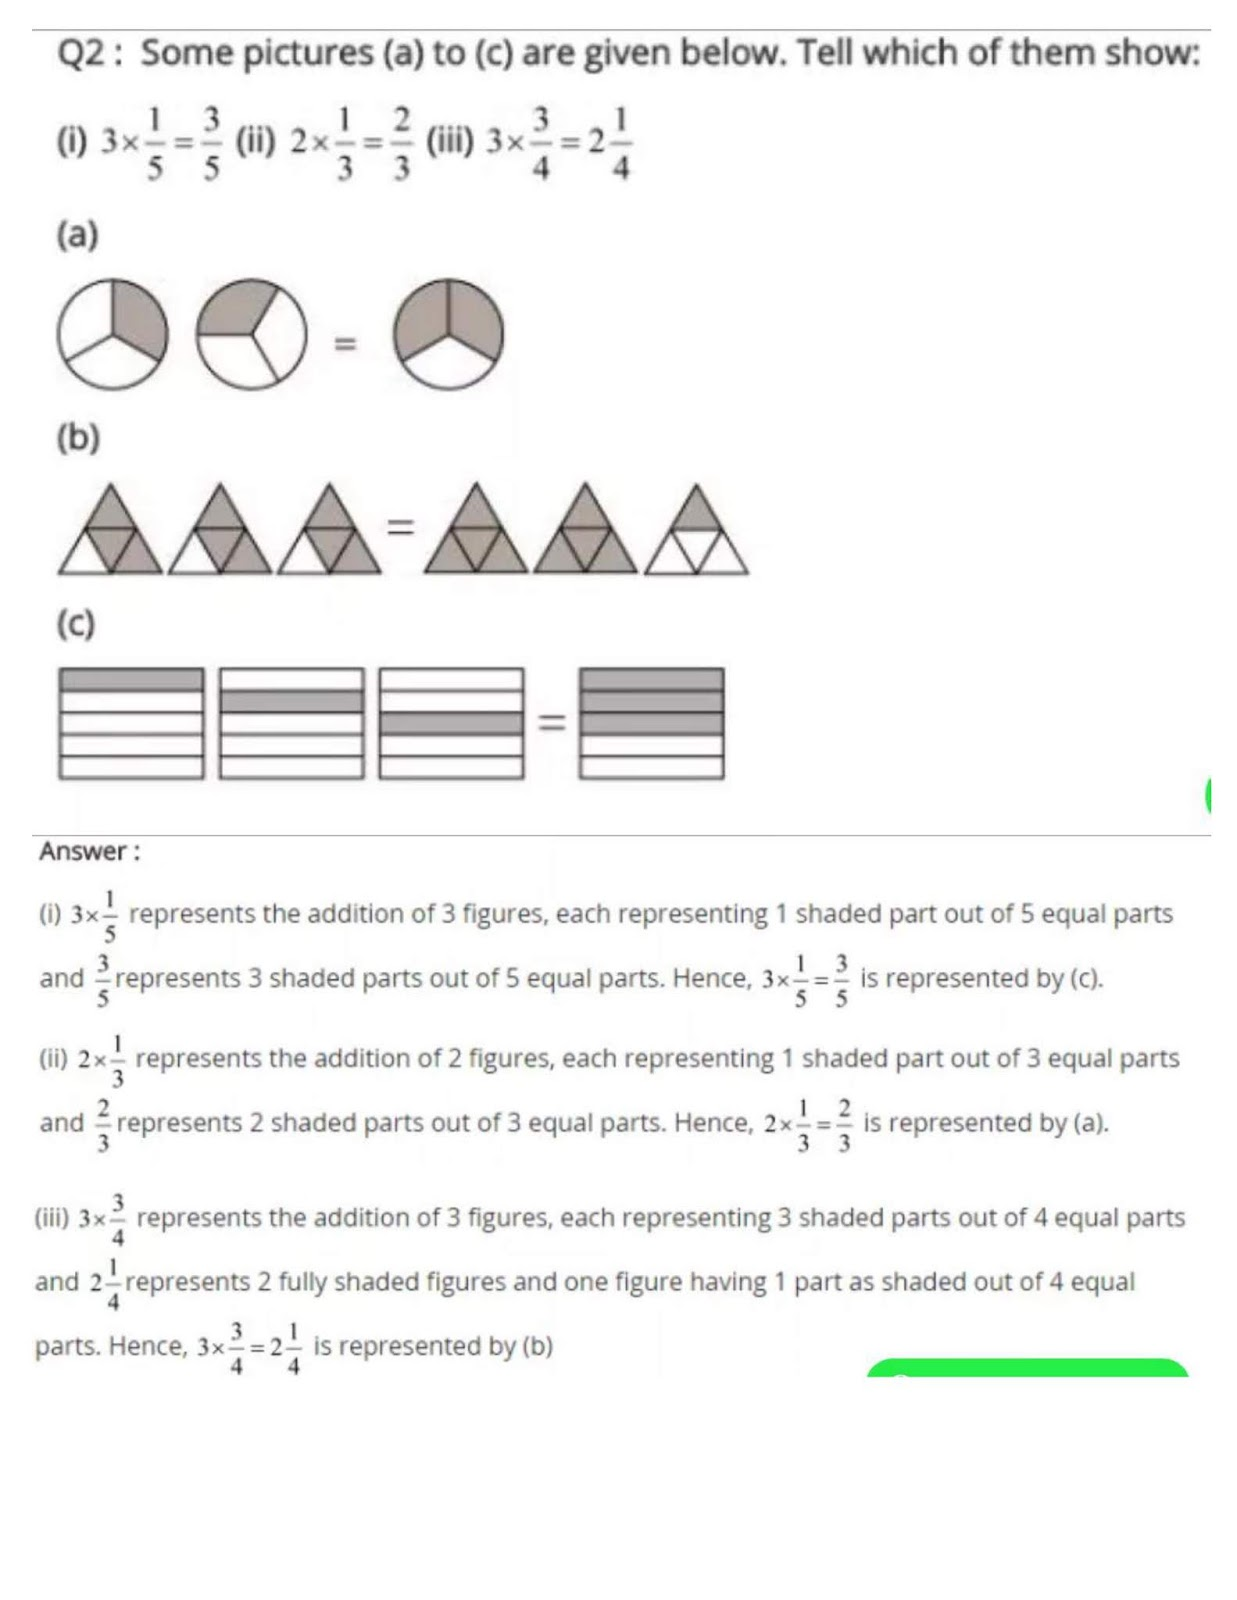 NCERT Solutions of Class 7 MATHS Chapter 2 FRACTIONS AND